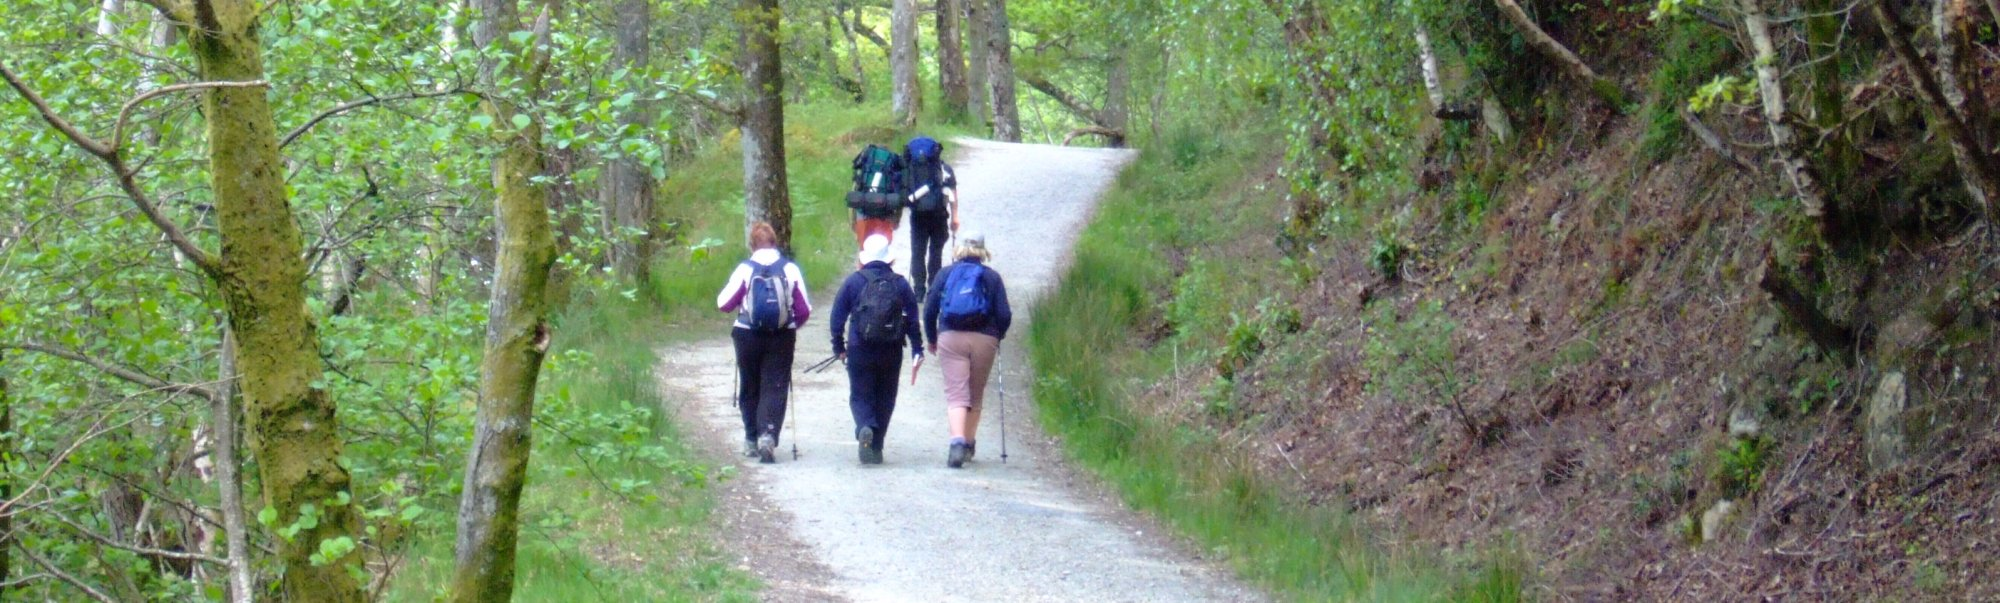 The crowded path on Day 3 from Rowardennan